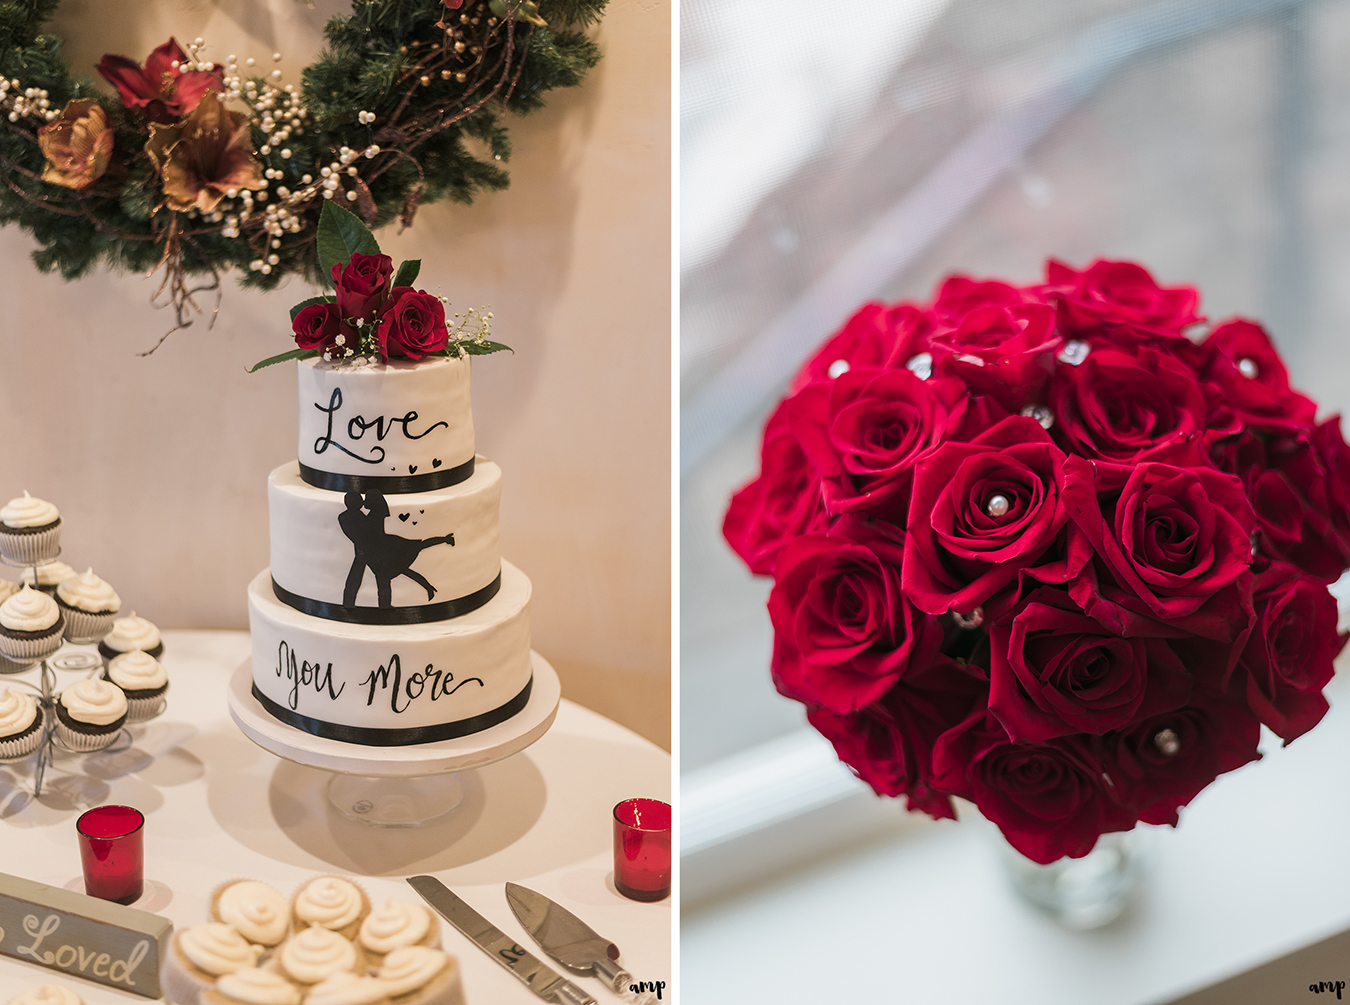 """Silhouette wedding cake saying """"Love You More"""" plus bride's red rose bouquet"""